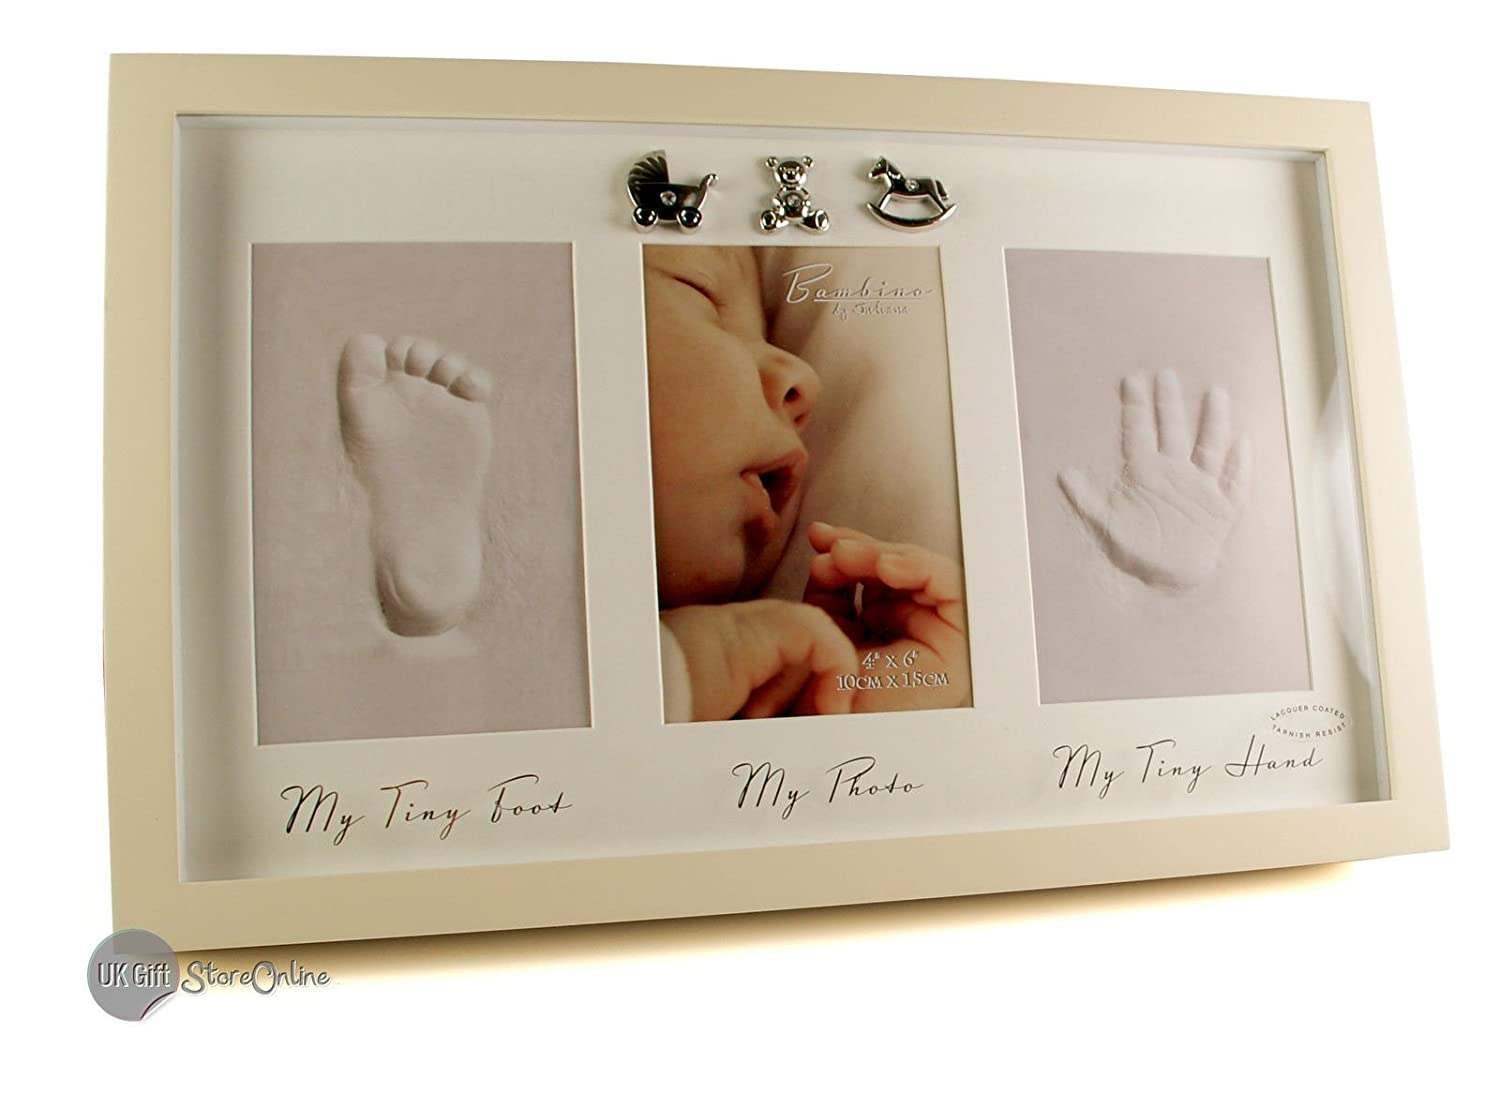 Baby Hand Print and Foot Print Plaster Cast Kit & Photo frame ukgiftstoreonline